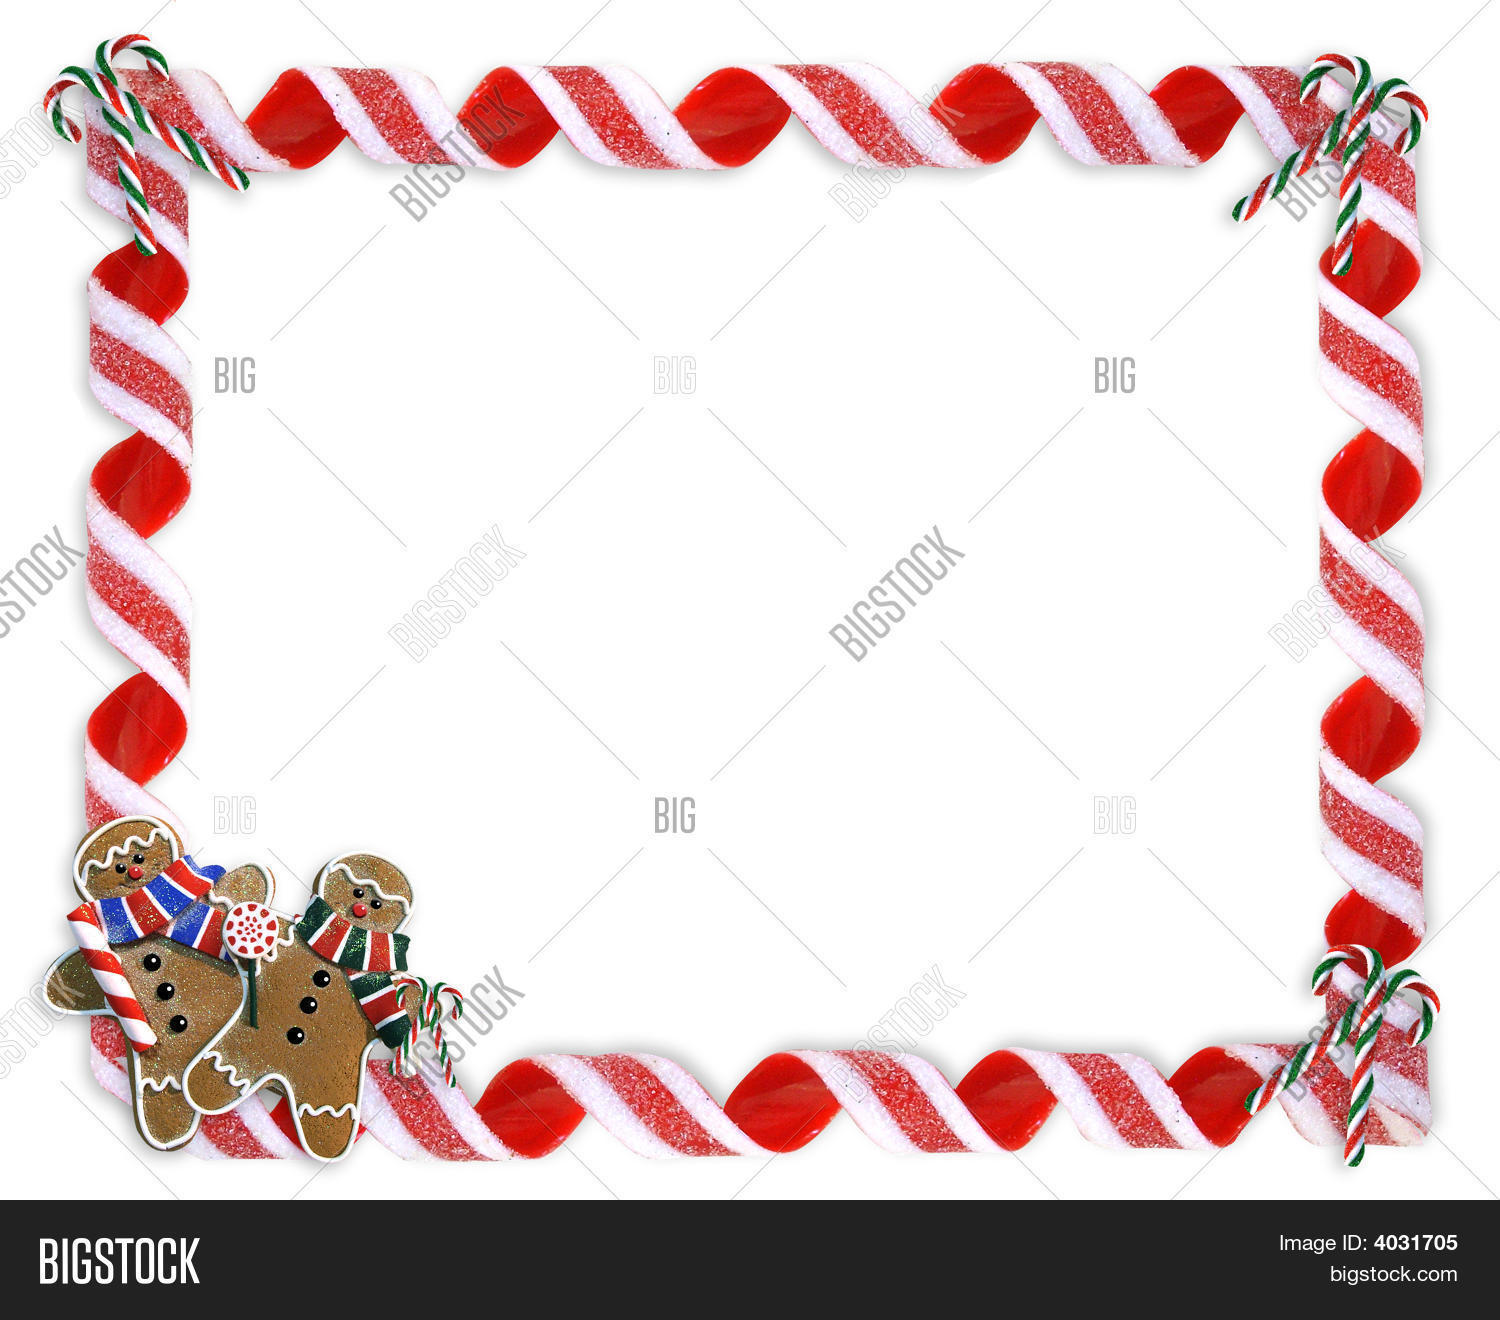 Christmas Frame Candy Image Amp Photo Free Trial